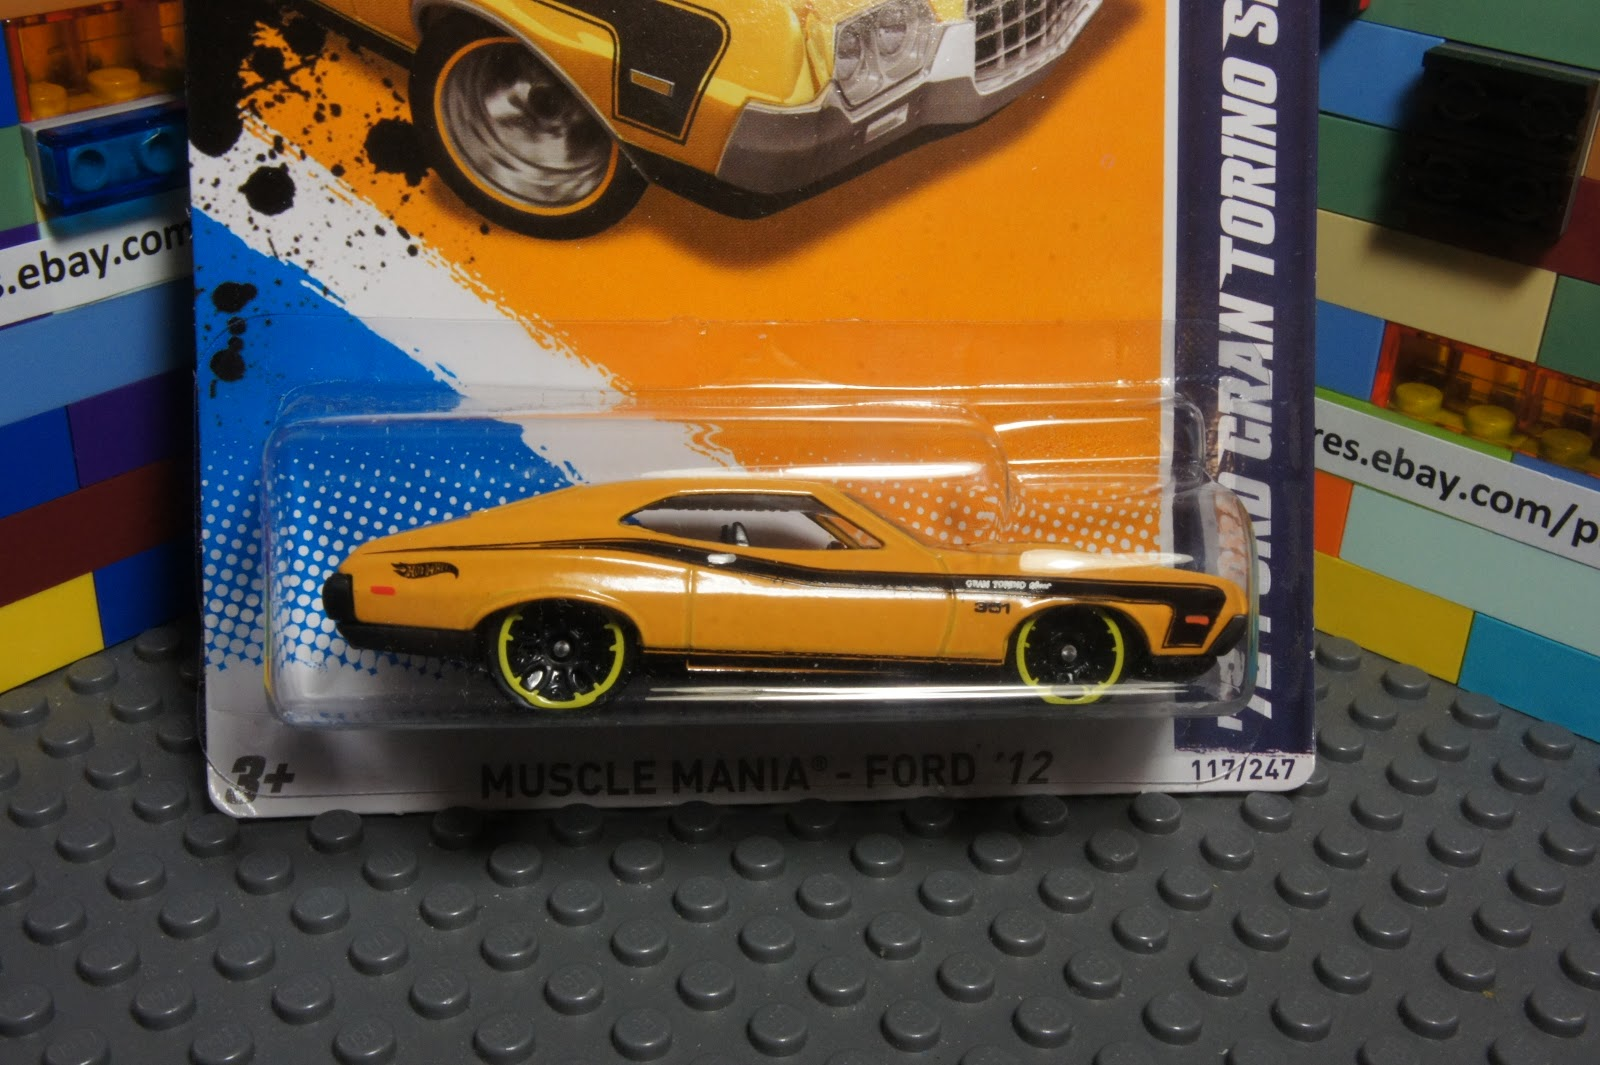 Hot Wheels Yellow '72 Ford Gran Torino Sport Diecast Muscle Mania Ford '12 7 10